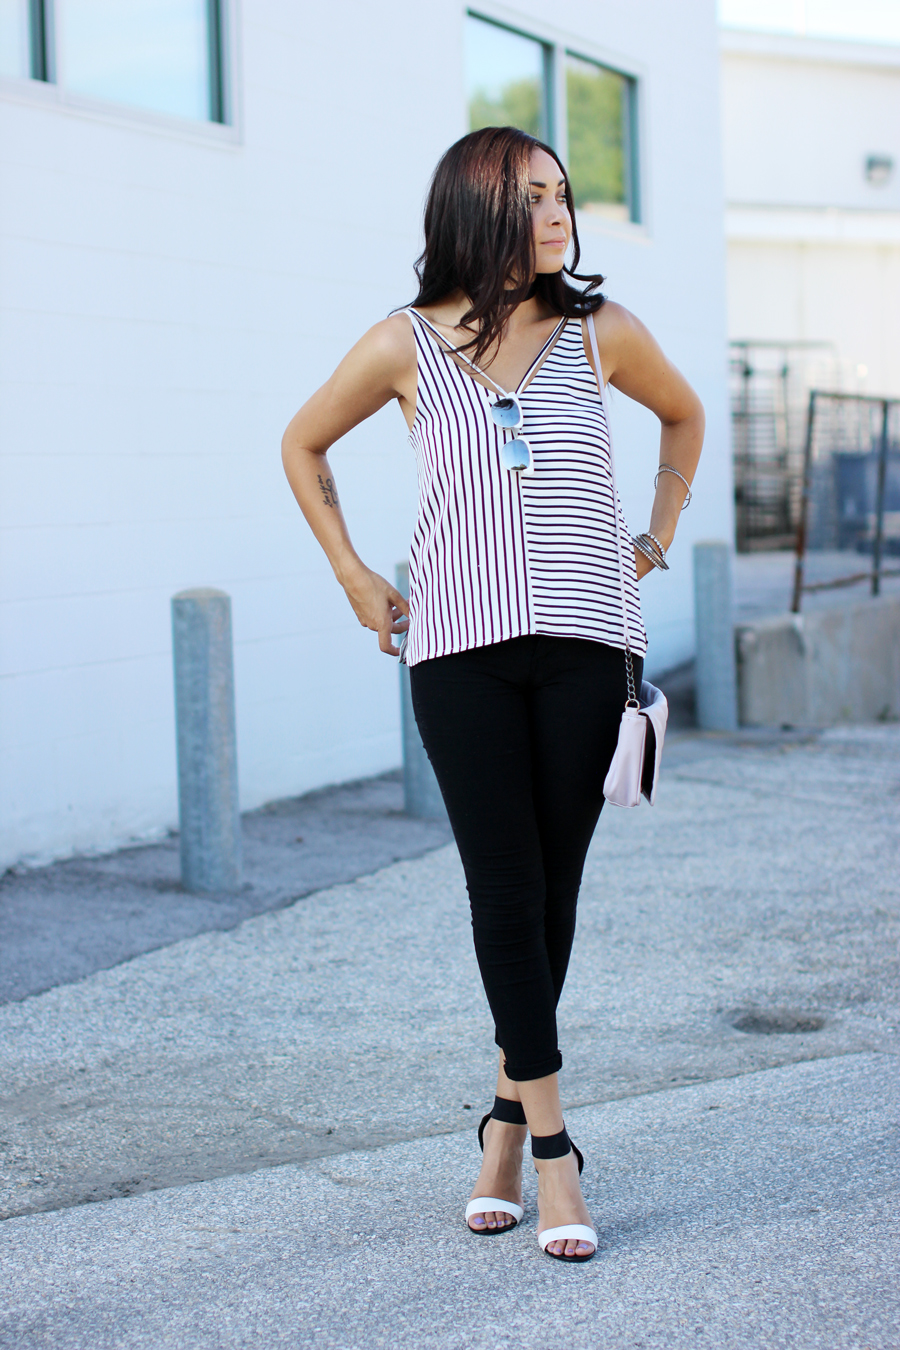 FTT-SHEIN-BLACK-WHITE-STRIPES-SUMMER-CHIC-